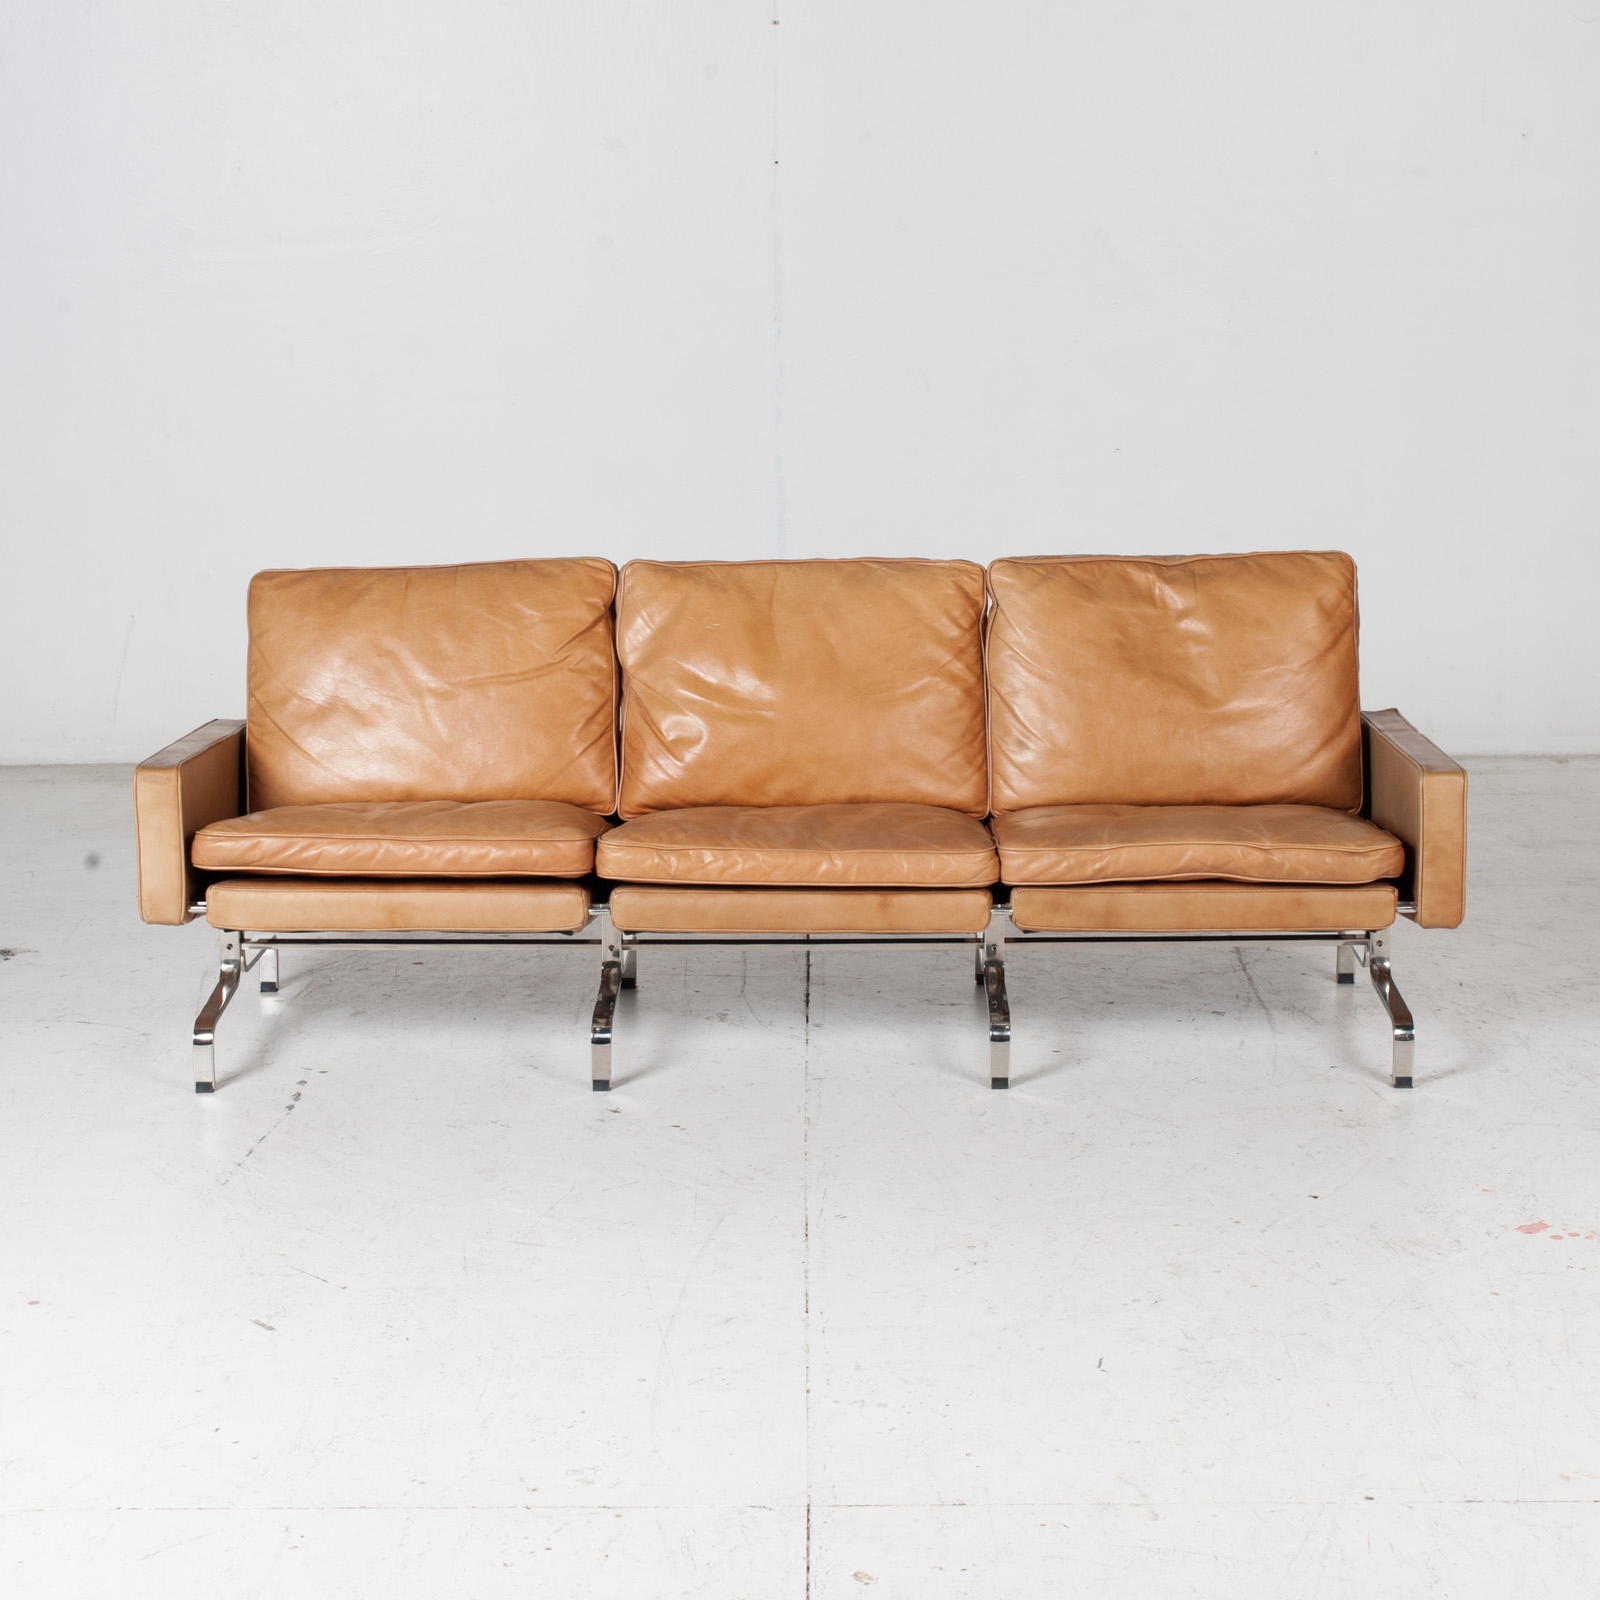 3 Seat Sofa By Poul Kjaerholm For Ejvind Kold Christensen In Tan Leather And Chrome, 1960s, Denmark 2